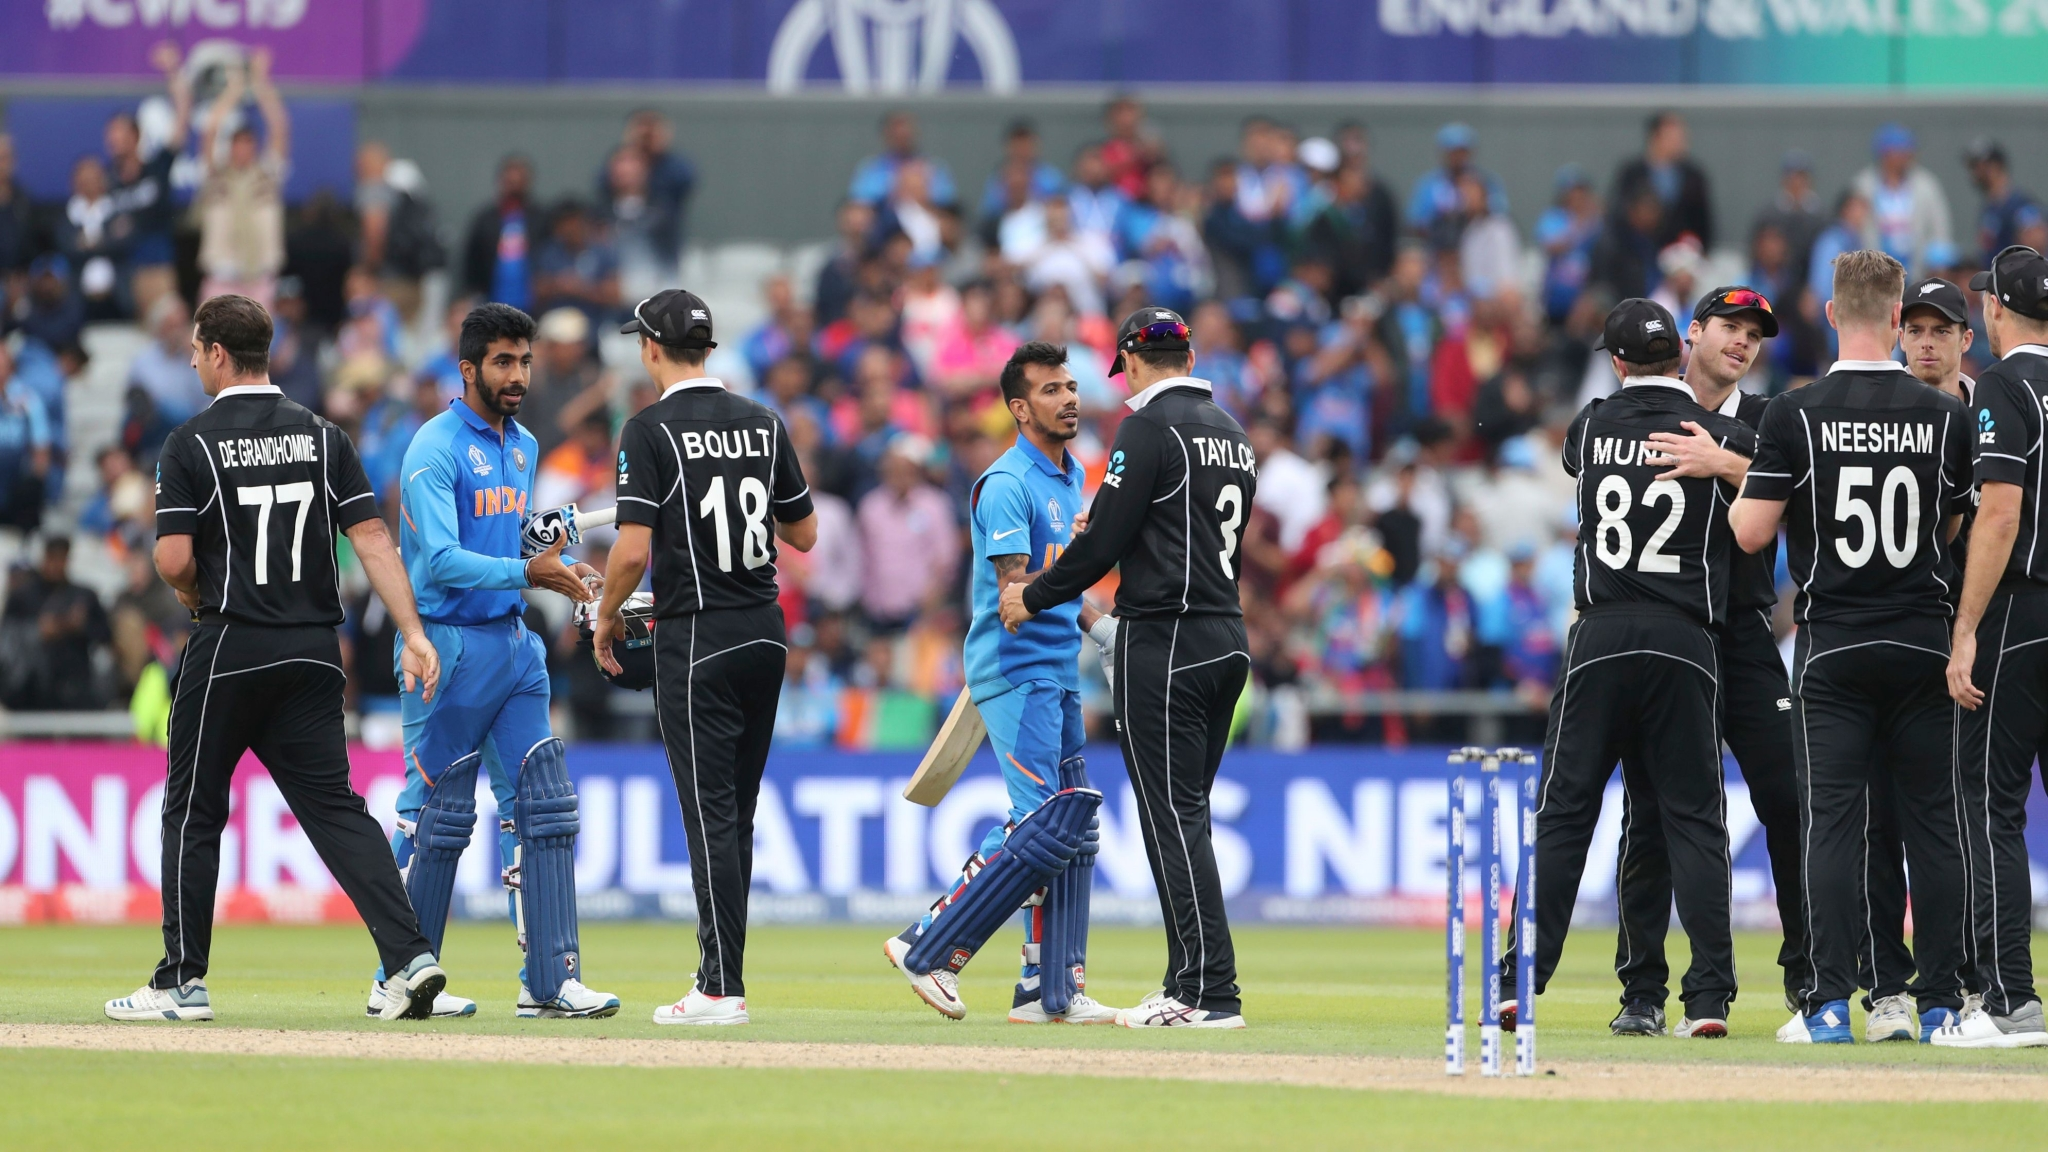 After India's Loss, New Zealand Becomes Pakistan's 'Nayi Mohabbat'